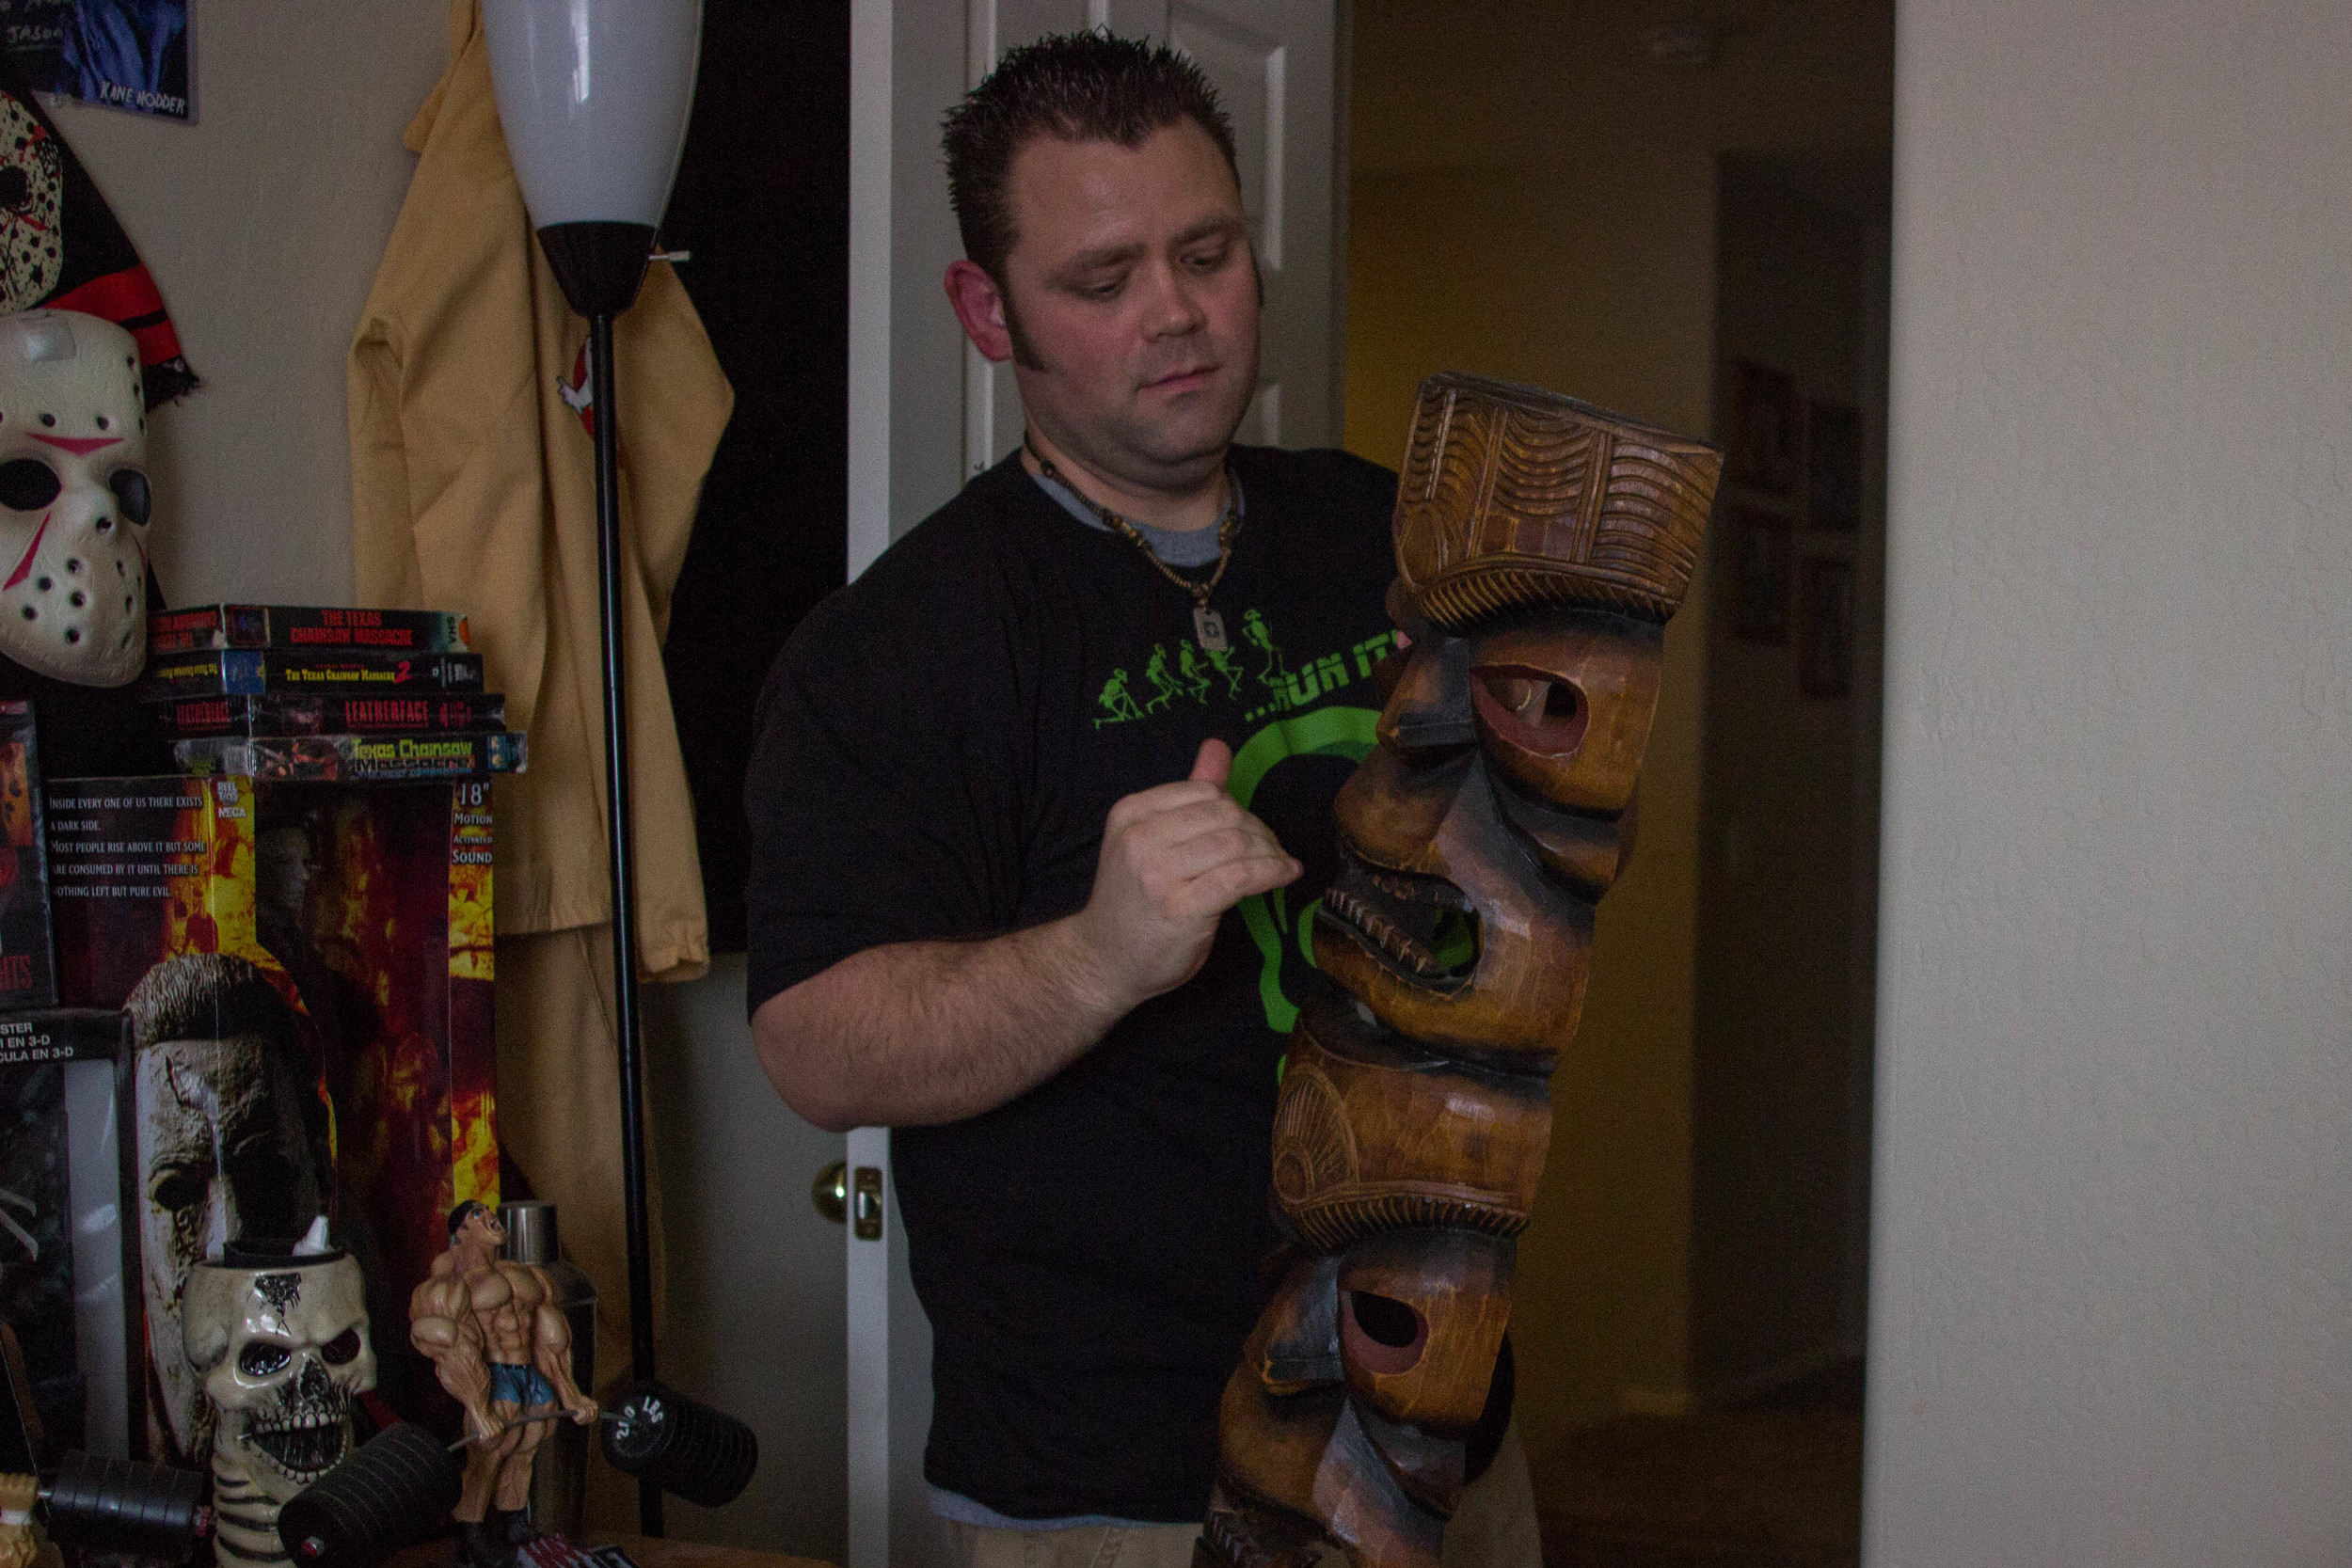 Owner and case manager of Arizona ghost hunting group COPS, Jay Yates of Phoenix, Ariz., removes a totem from his home office that he and his wife believe might be haunted. (Photo by Gretchen Burnton)